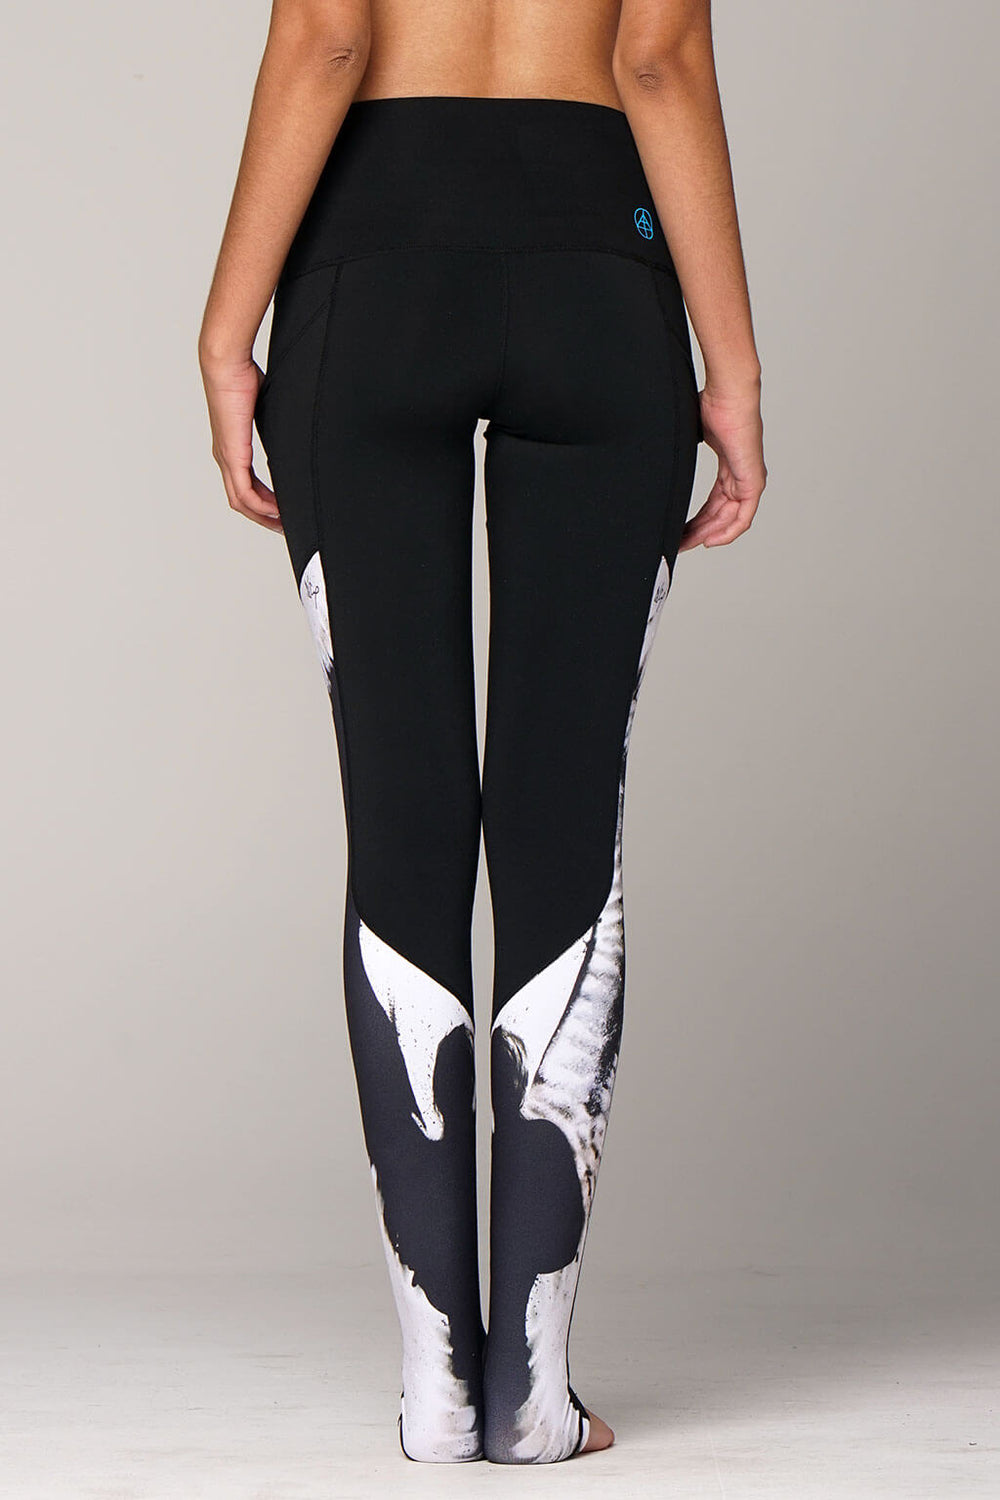 yoga Leggings by Yogavated Athletic Apparel Oracle Swoosh Legging